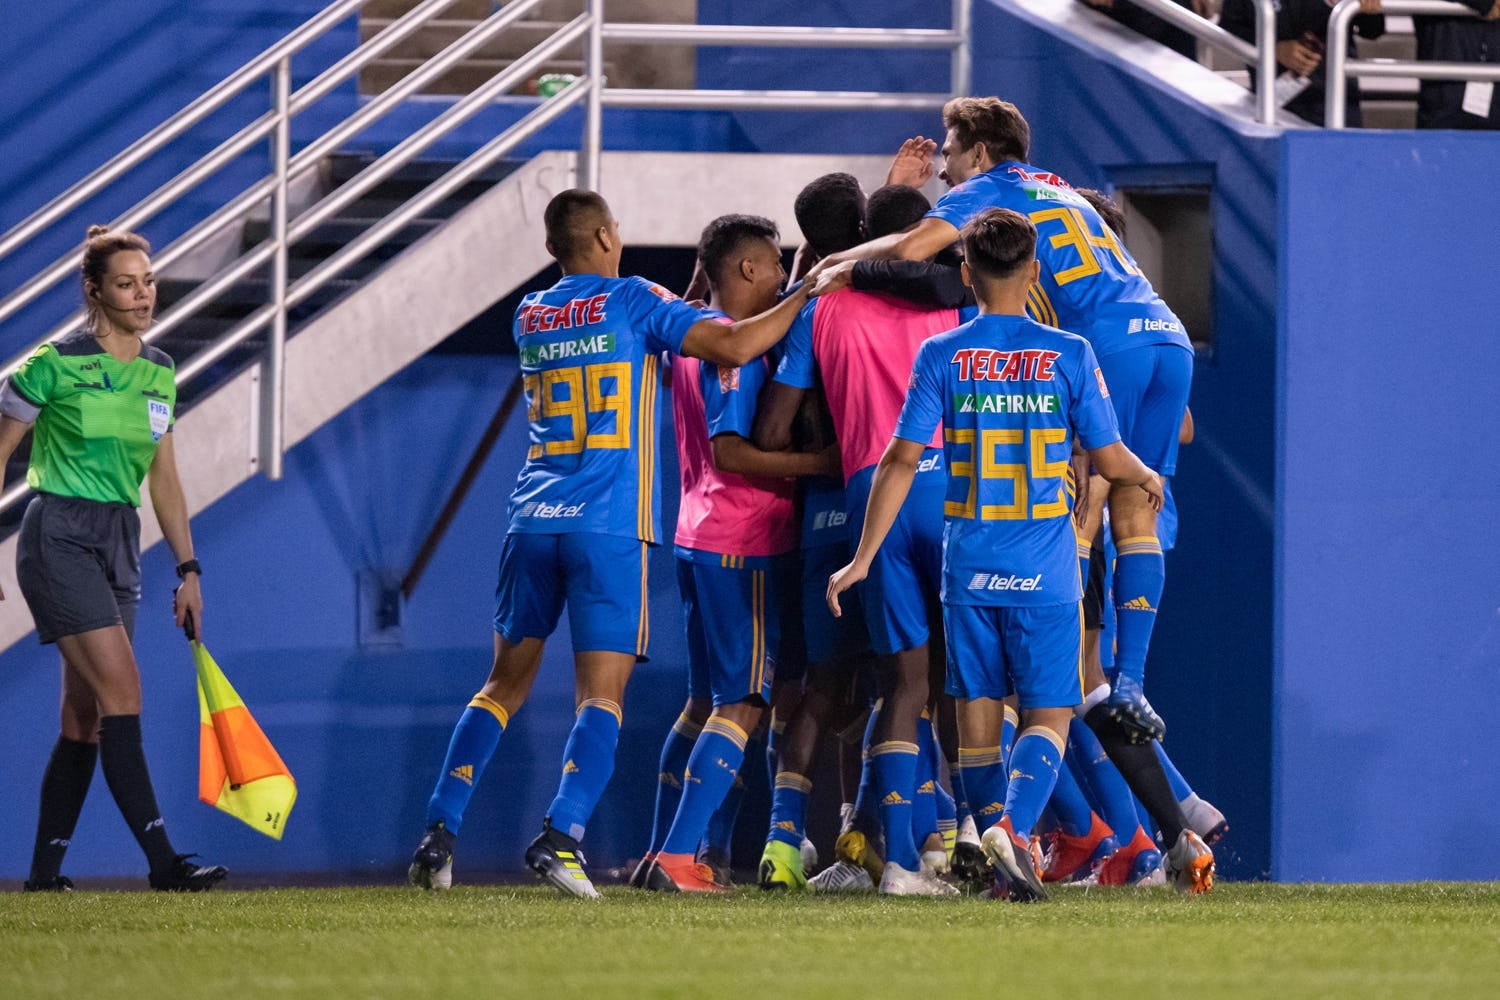 Tigres and Villarreal to meet in 2019 Dallas Cup Super Group Final.